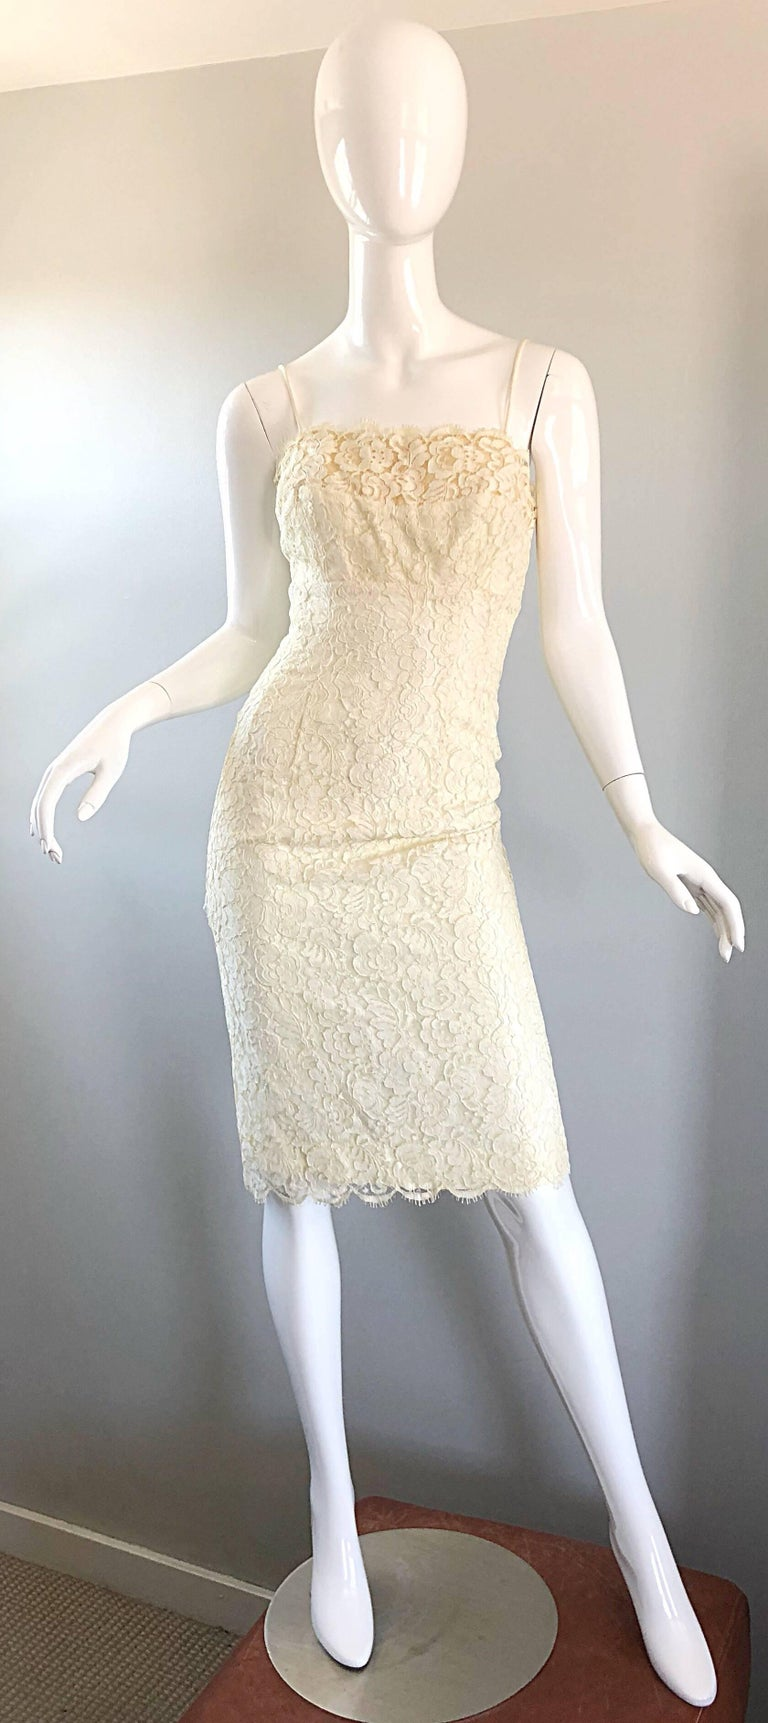 Beautiful 1950s LILLI DIAMOND ivory French lace wiggle dress! Wonderful fit hugs the body in all the right places, and was constructed to really flattering the body. Nude illusion detail above the bust. Spaghetti strap sleeves can also be tucked in